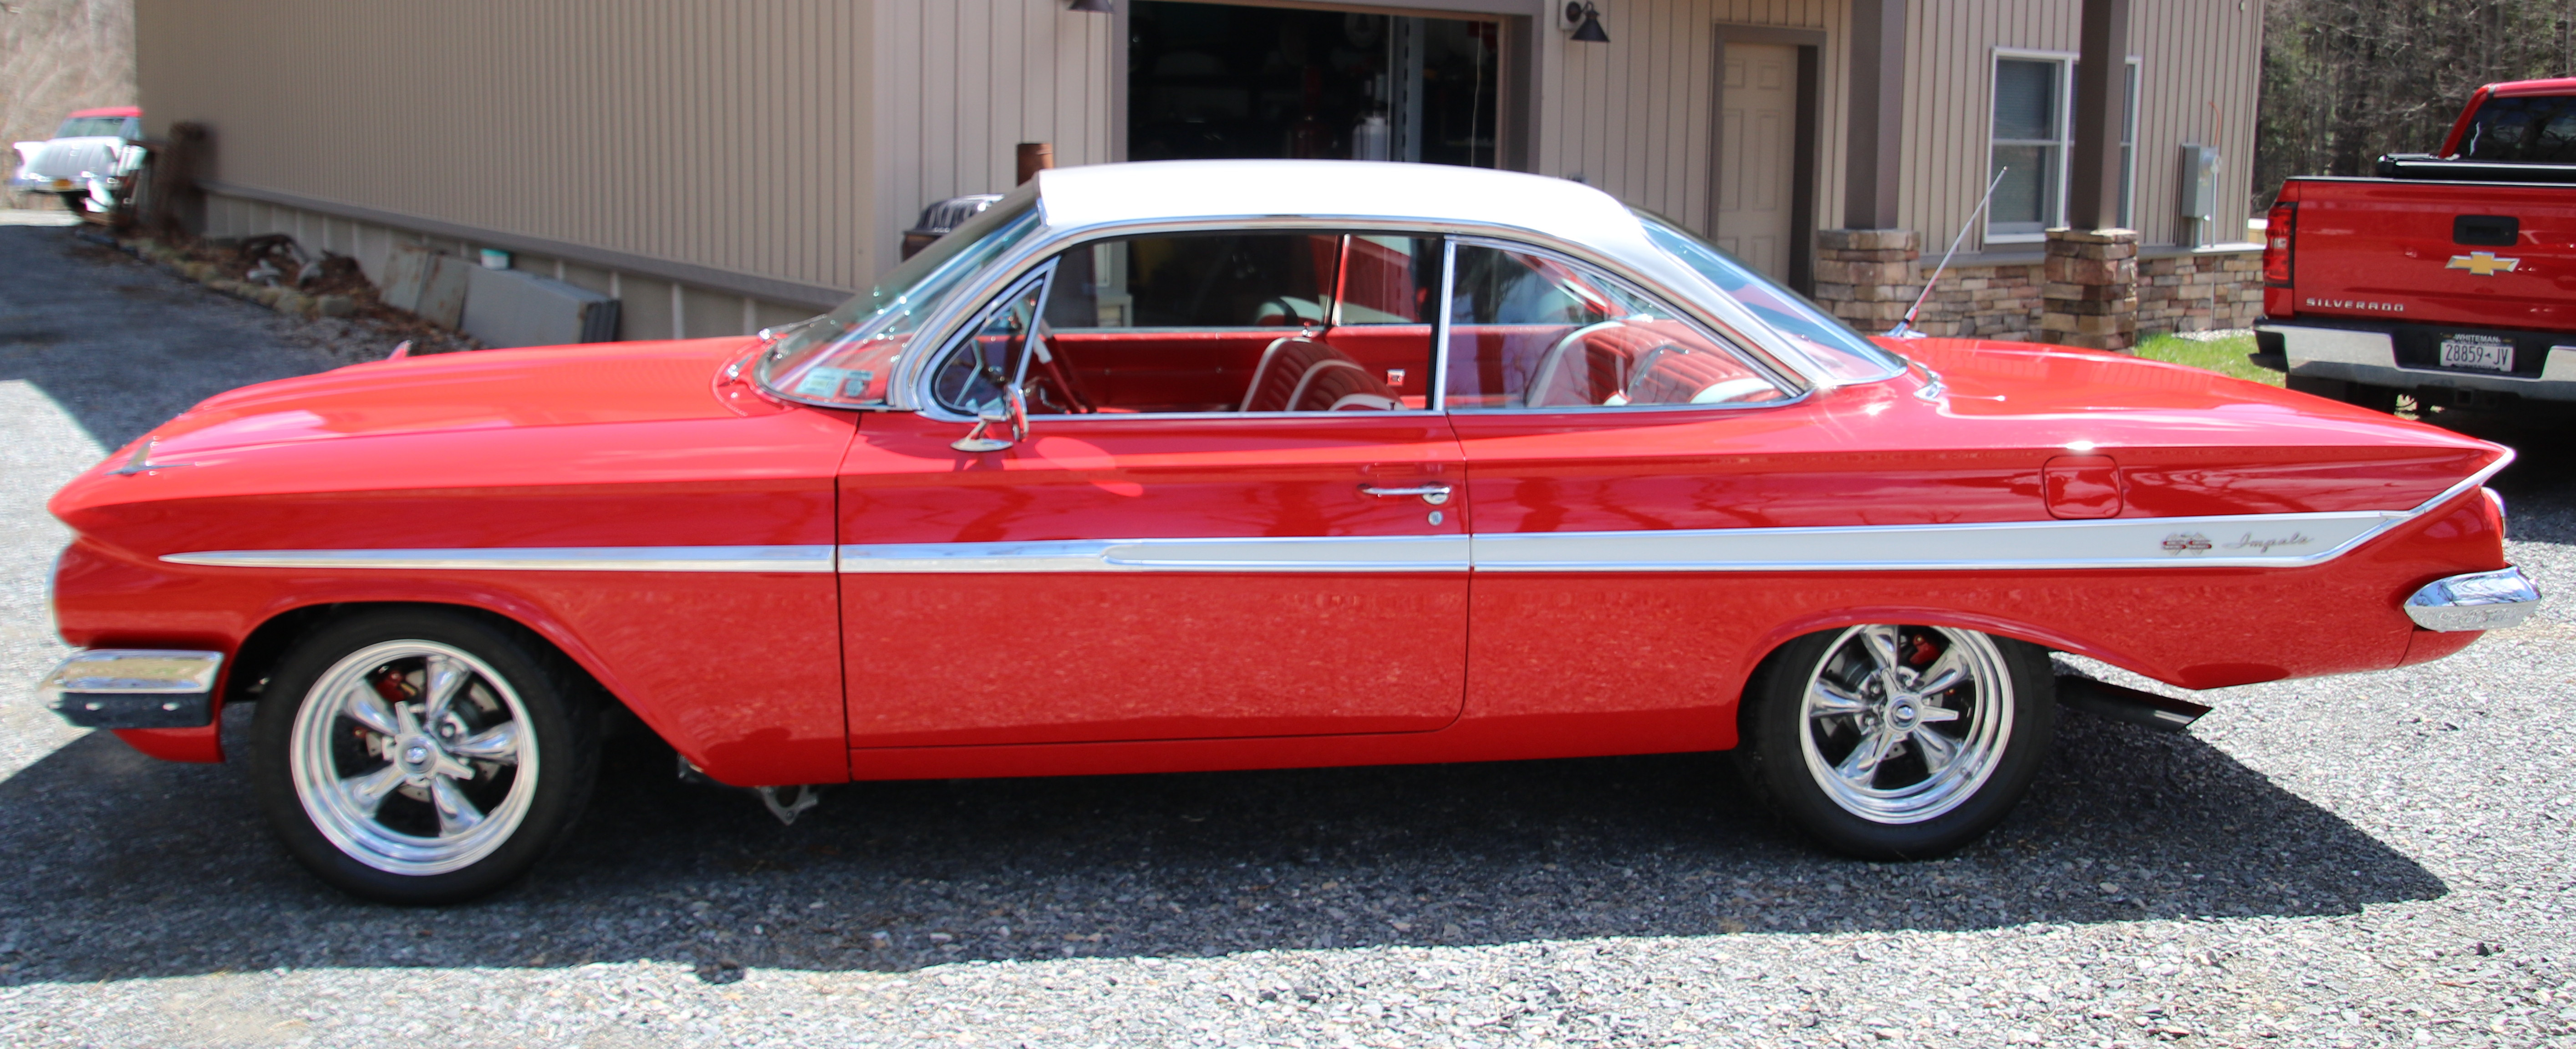 '61 Chevrolet 409 Bubble Top